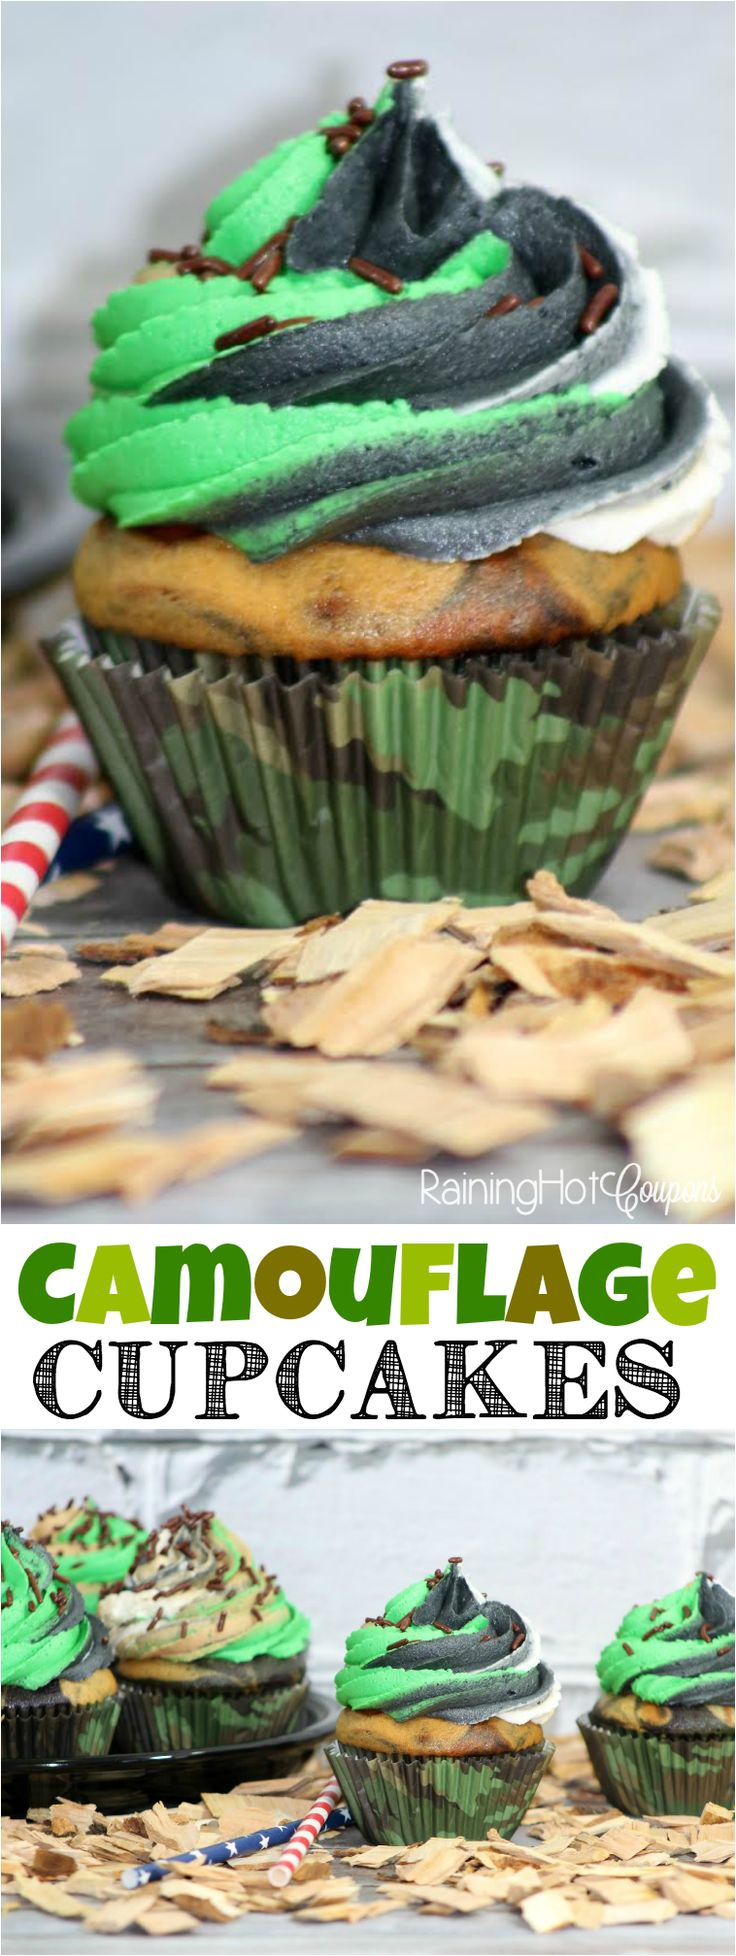 Camouflage Cupcakes - The camo cupcakes are perfect for holidays and birthday parties!